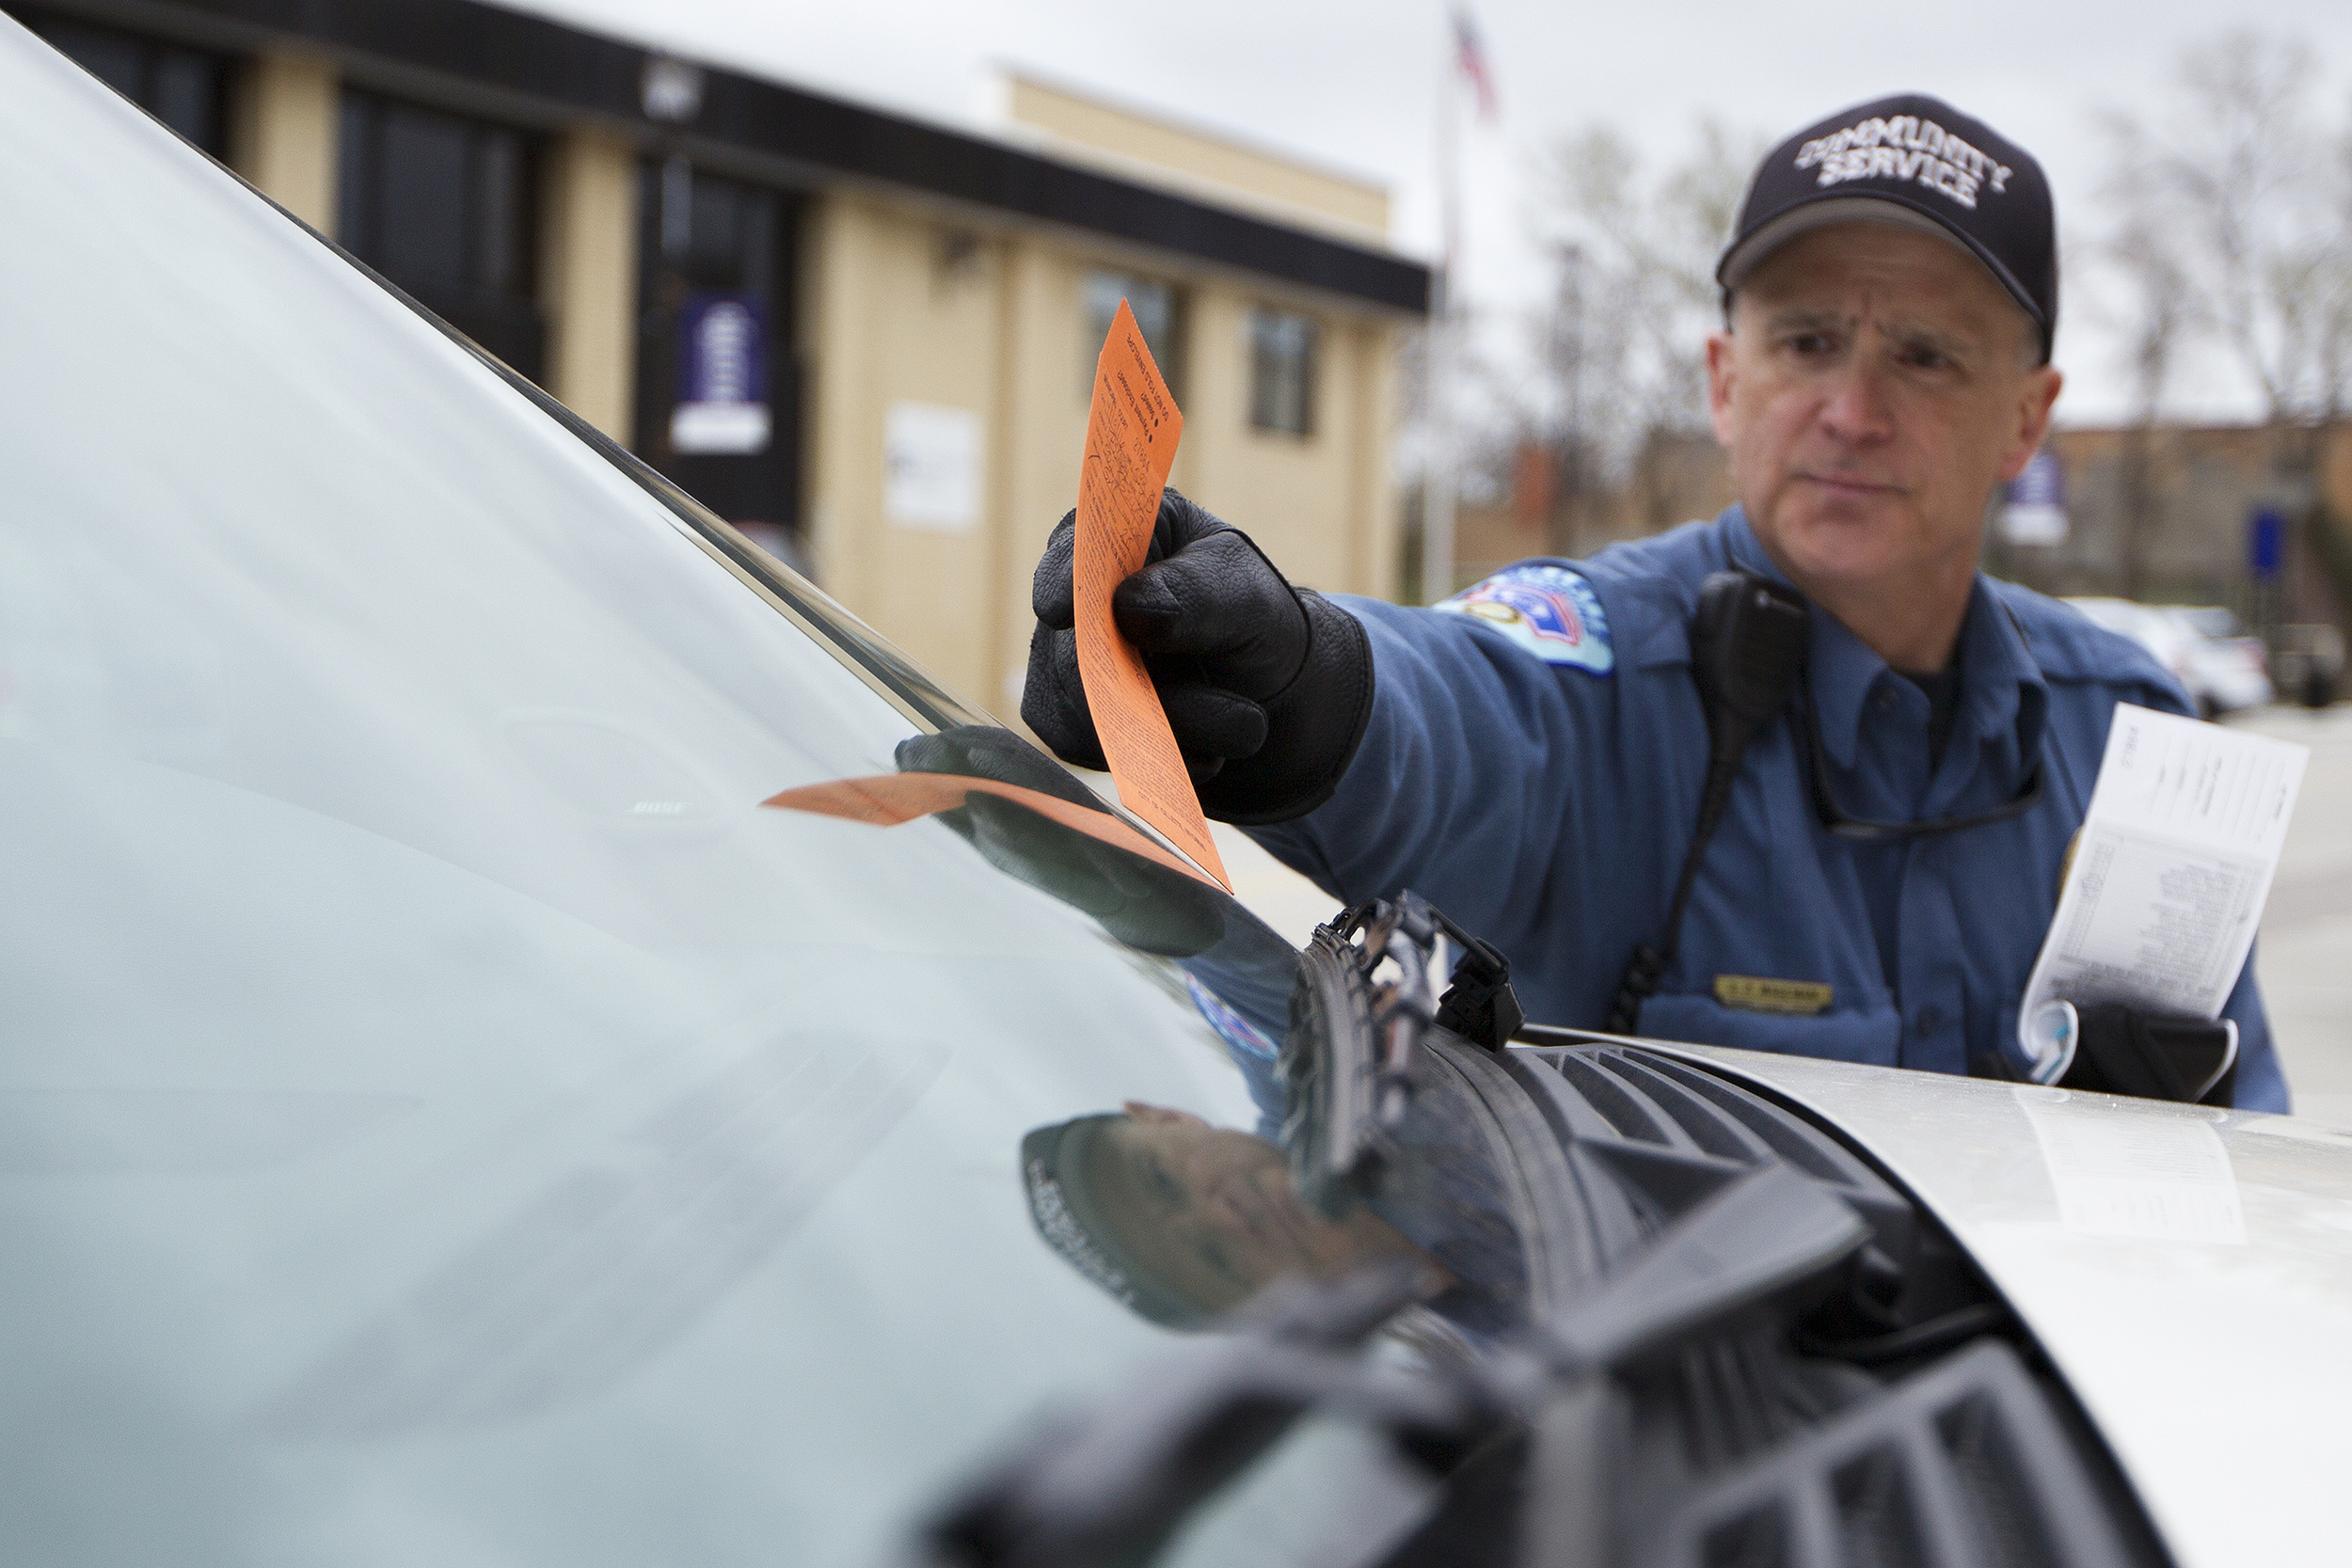 Gillette Community Service Officer Steve Wageman places a parking ticket on the windshield of a car on Gillette Avenue Tuesday afternoon. The city is hoping to cut between $450,000 and $500,000 by only filling two of the currently, or soon to be, open positions in the department.